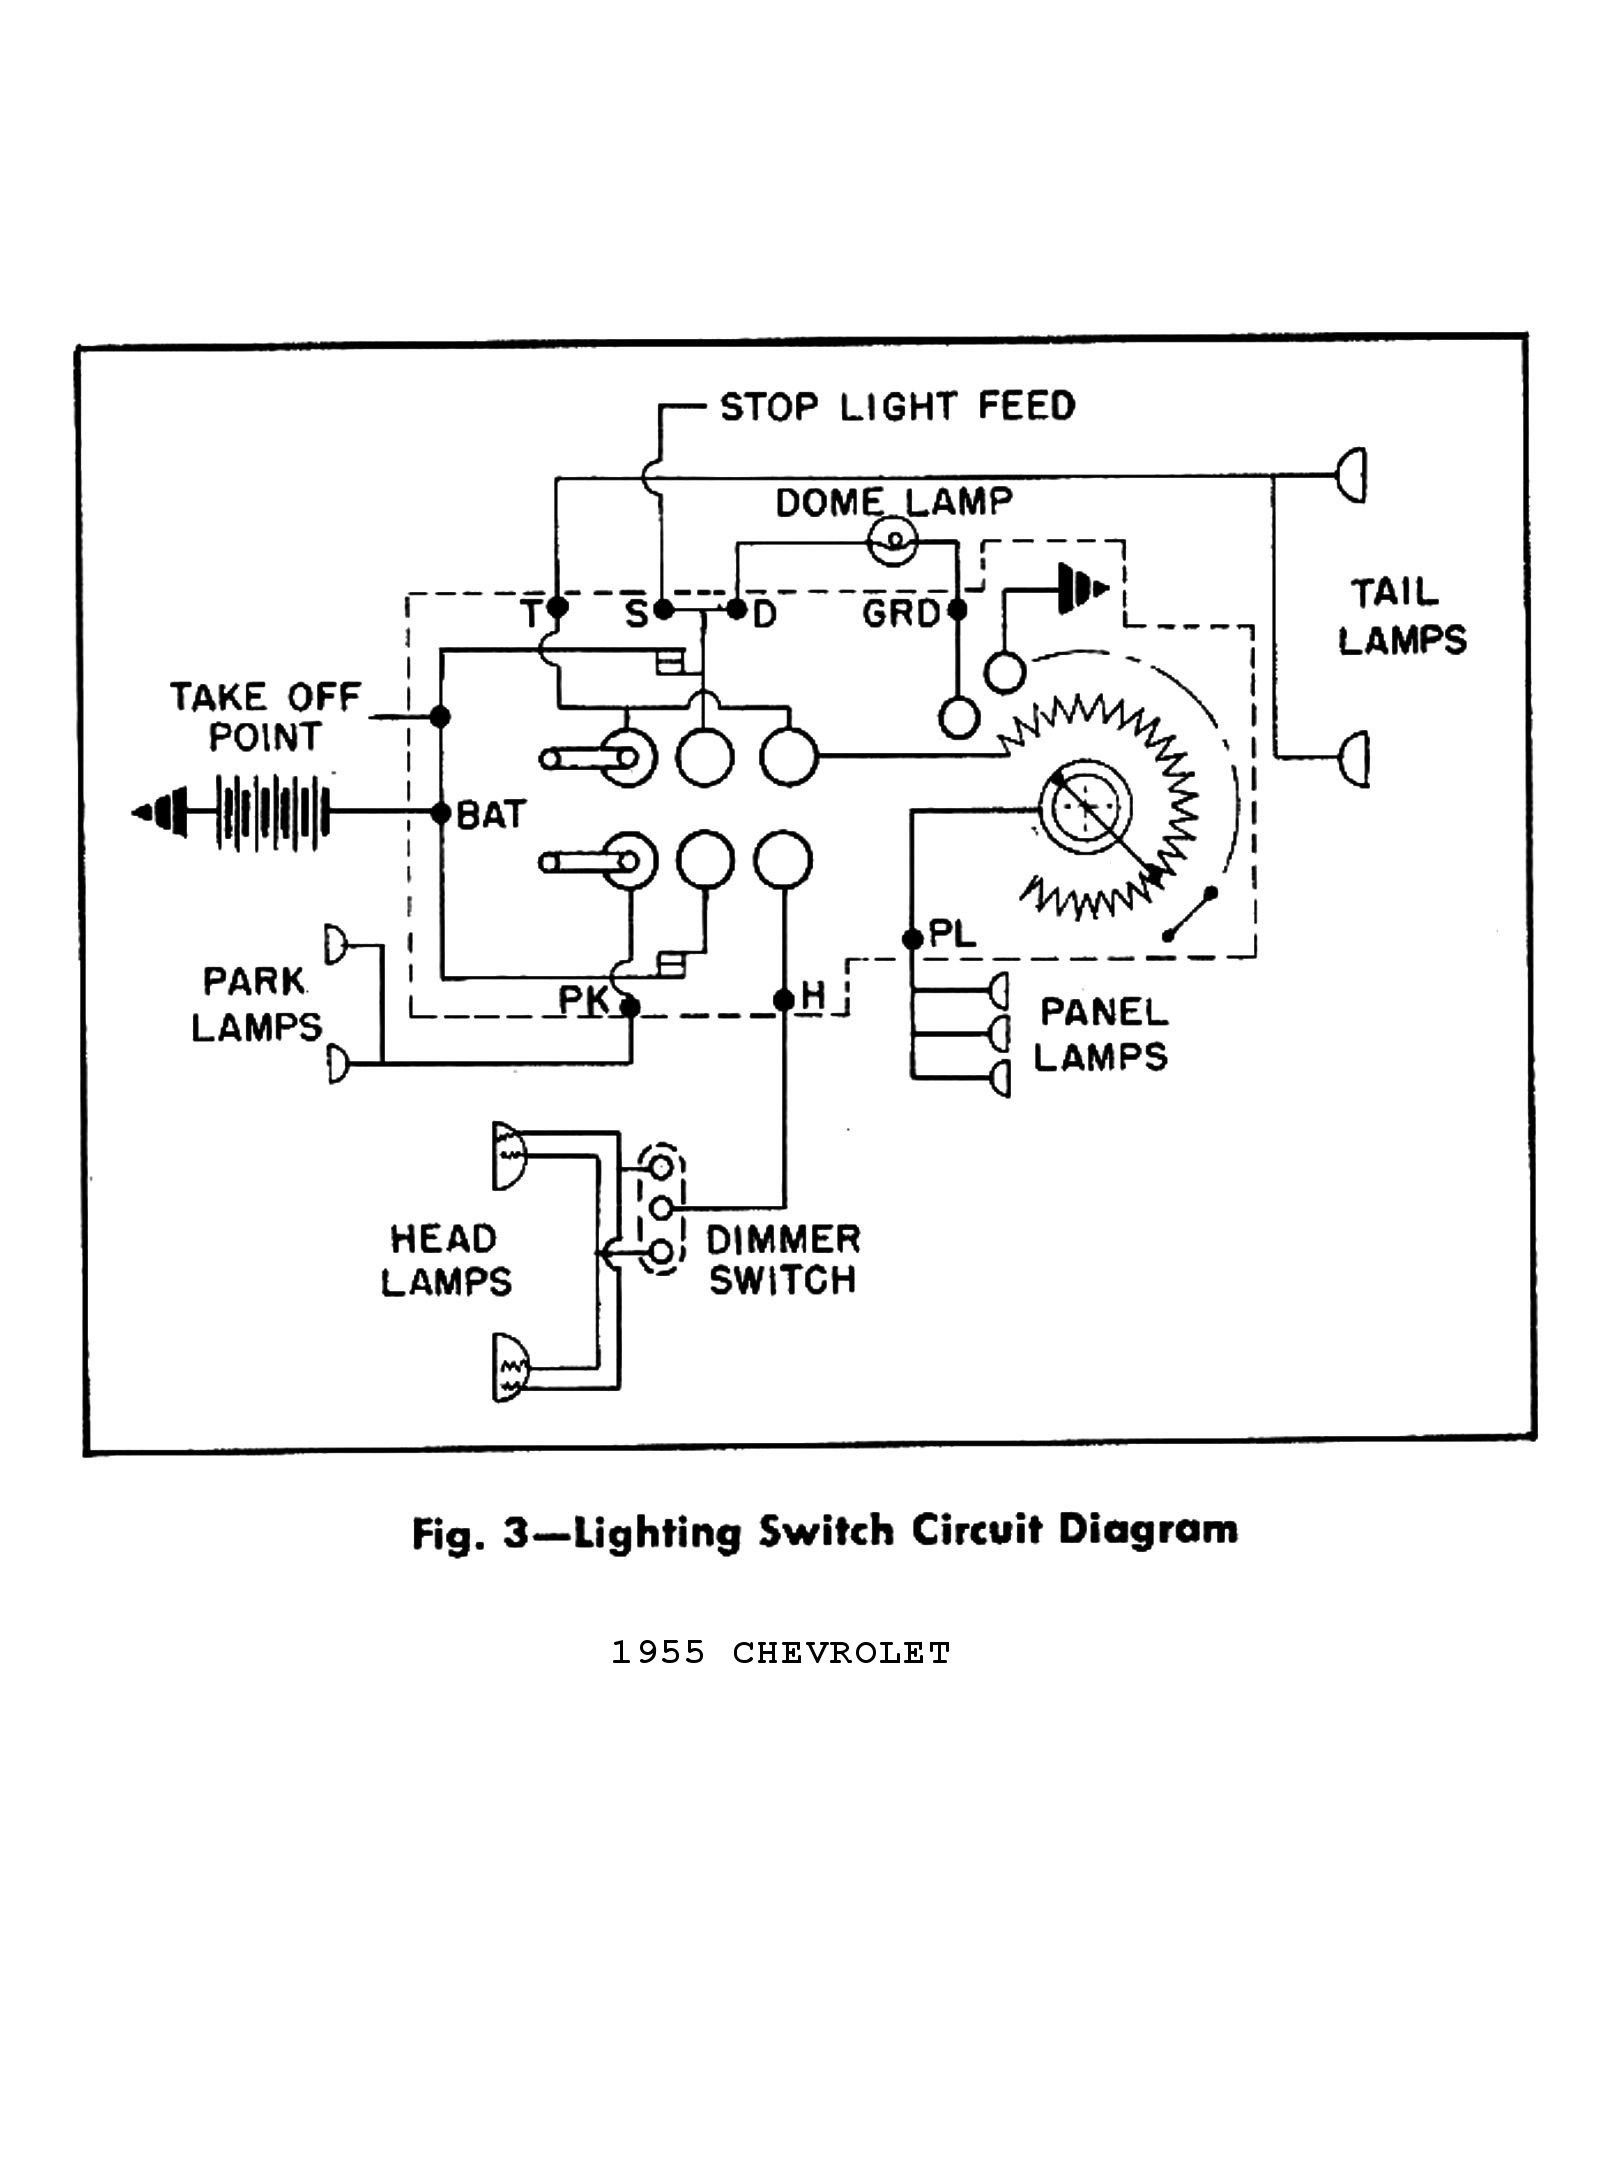 hight resolution of wiring diagram automatic car headlight dim switch system real auto dimmer switch wiring diagram leviton auto